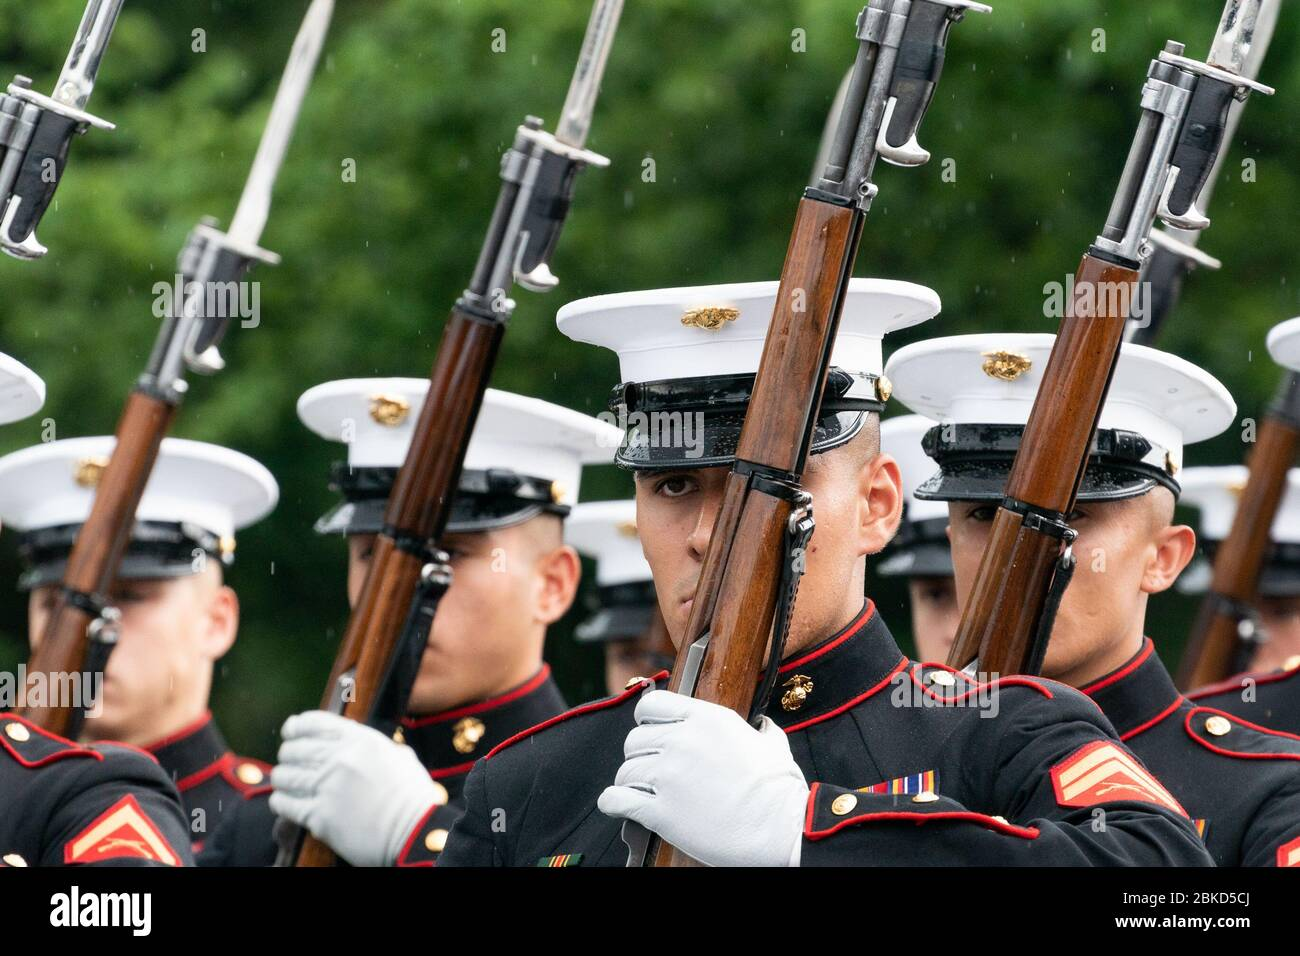 Members of the U.S. Marine Corps Silent Drill Platoon march in formation and perform at the Salute to America event Thursday, July 4, 2019, at the Lincoln Memorial in Washington, D.C. Salute to America Stock Photo